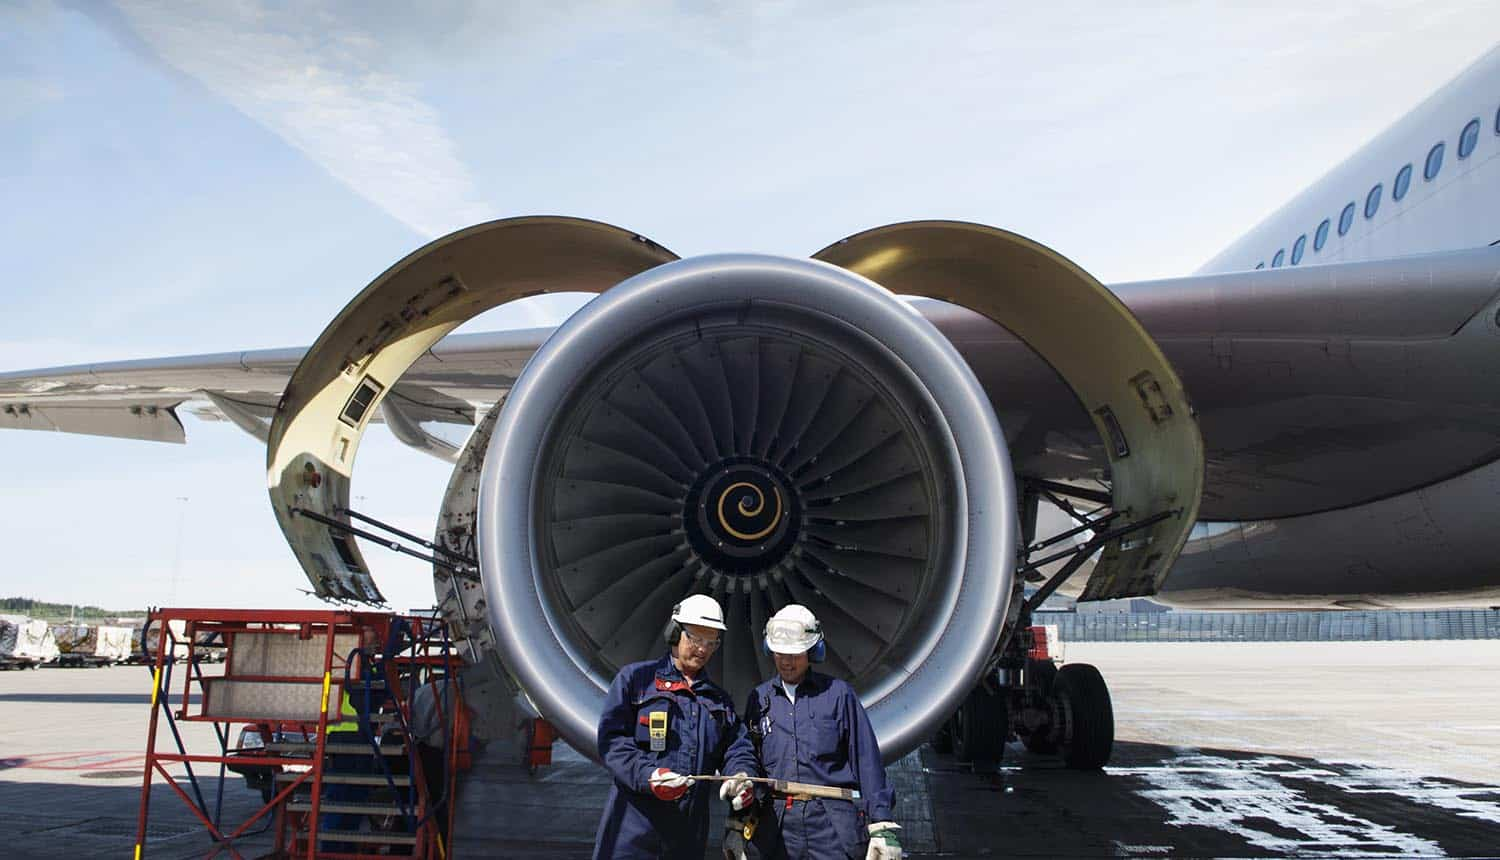 Mechanics standing in front of jet engine showing the importance of data security while airline industry is transforming to cloud-based technologies